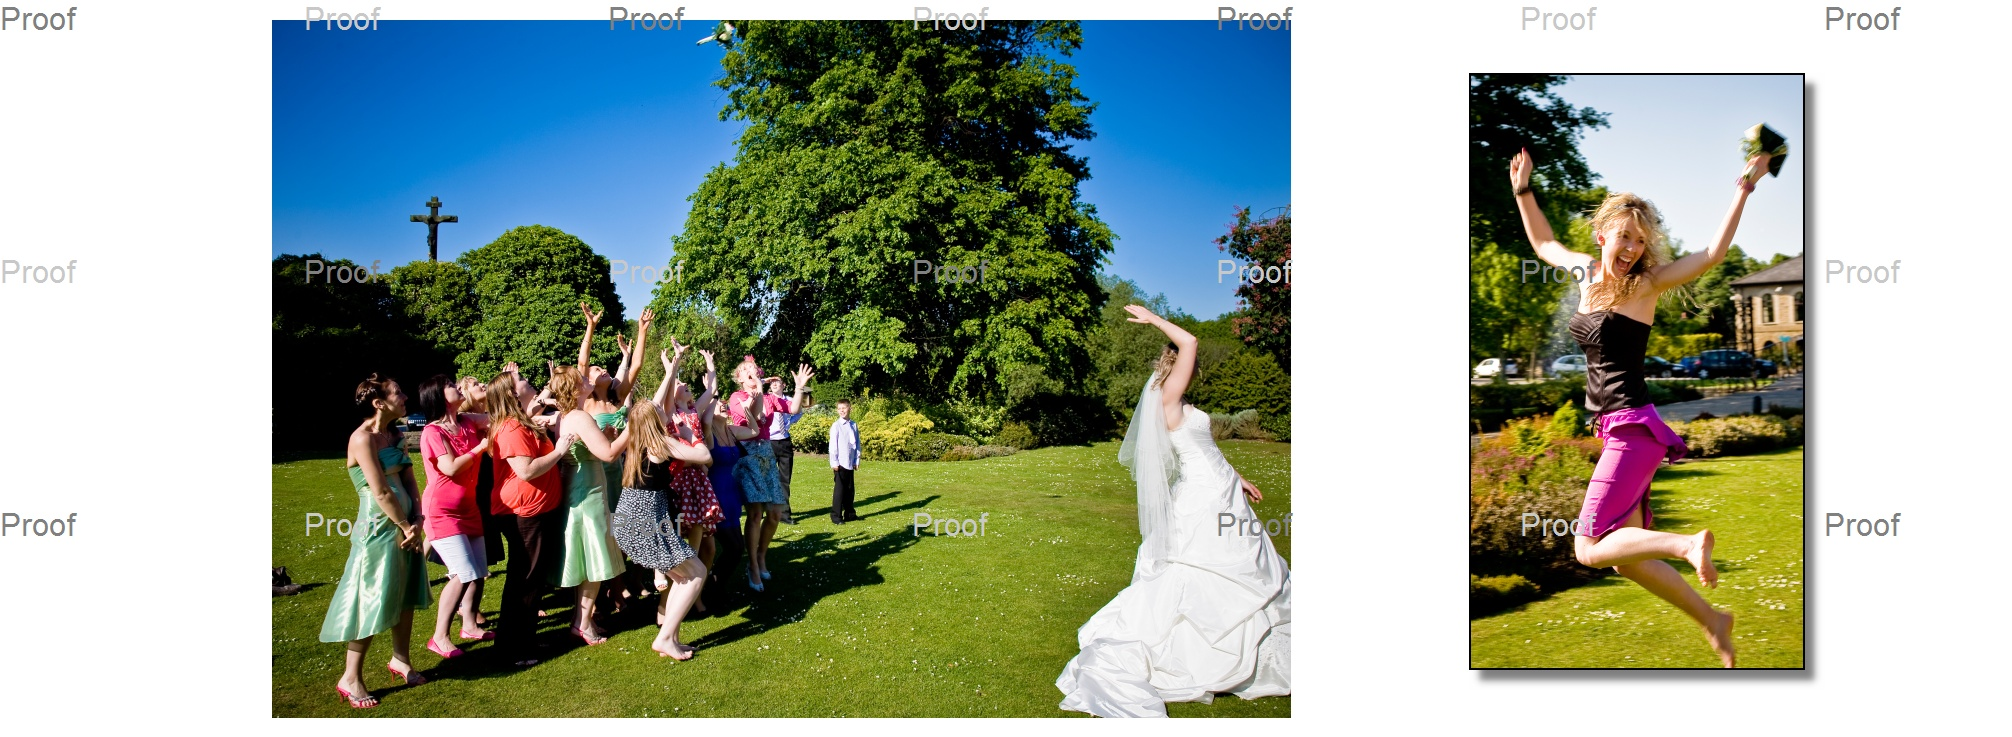 bride throwing the bouquet and ecstatic guest catching it